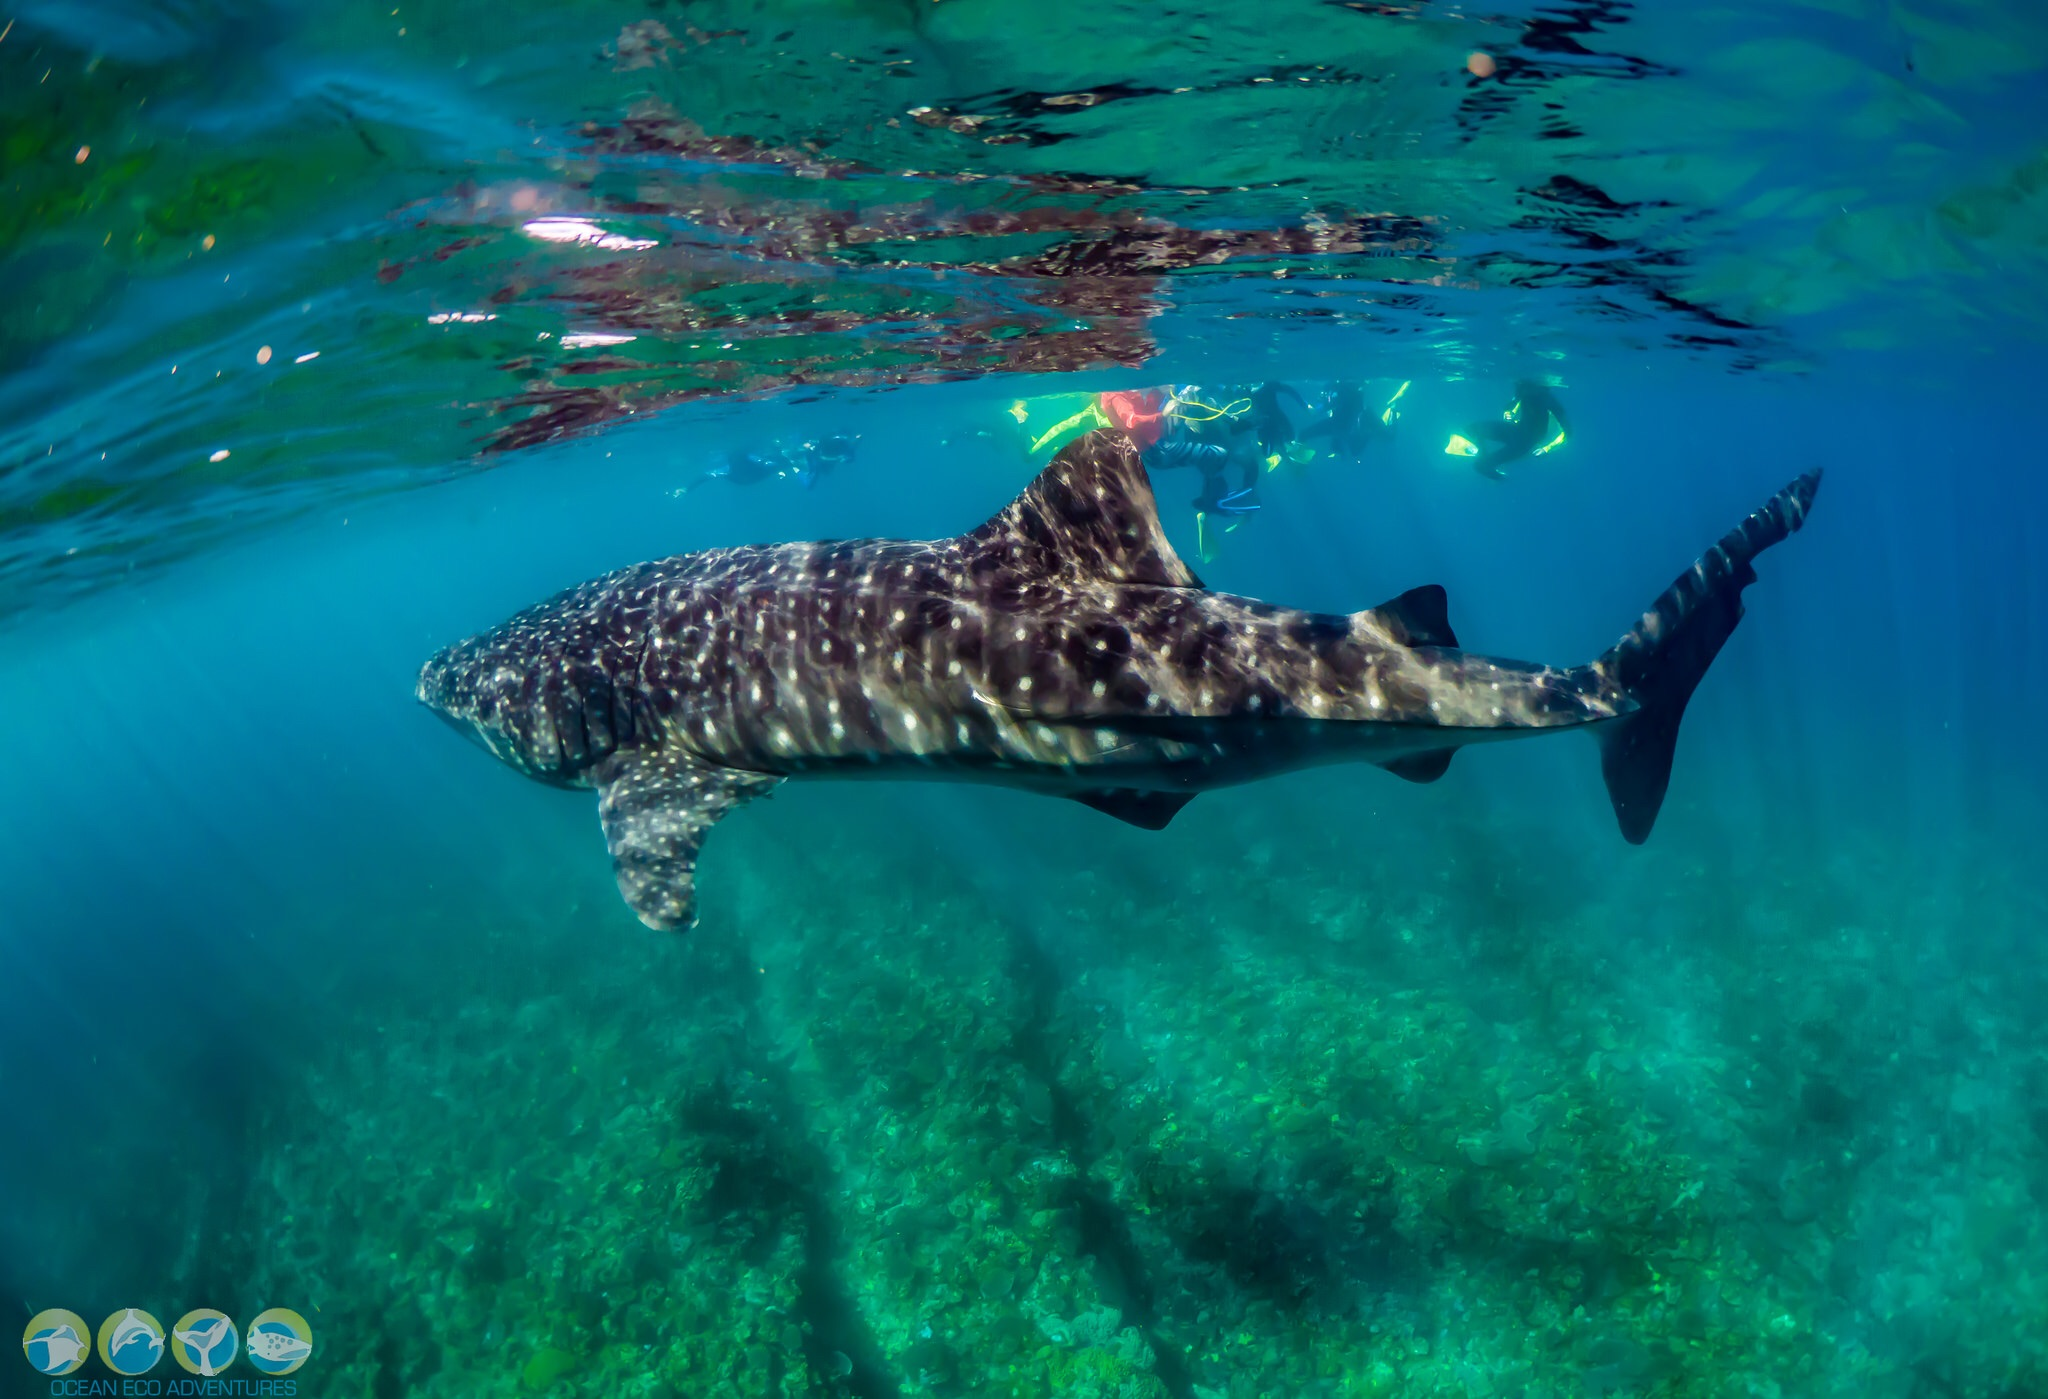 Review Of The Ocean Eco Adventures Whale Shark Tour, Exmouth Western Australia.